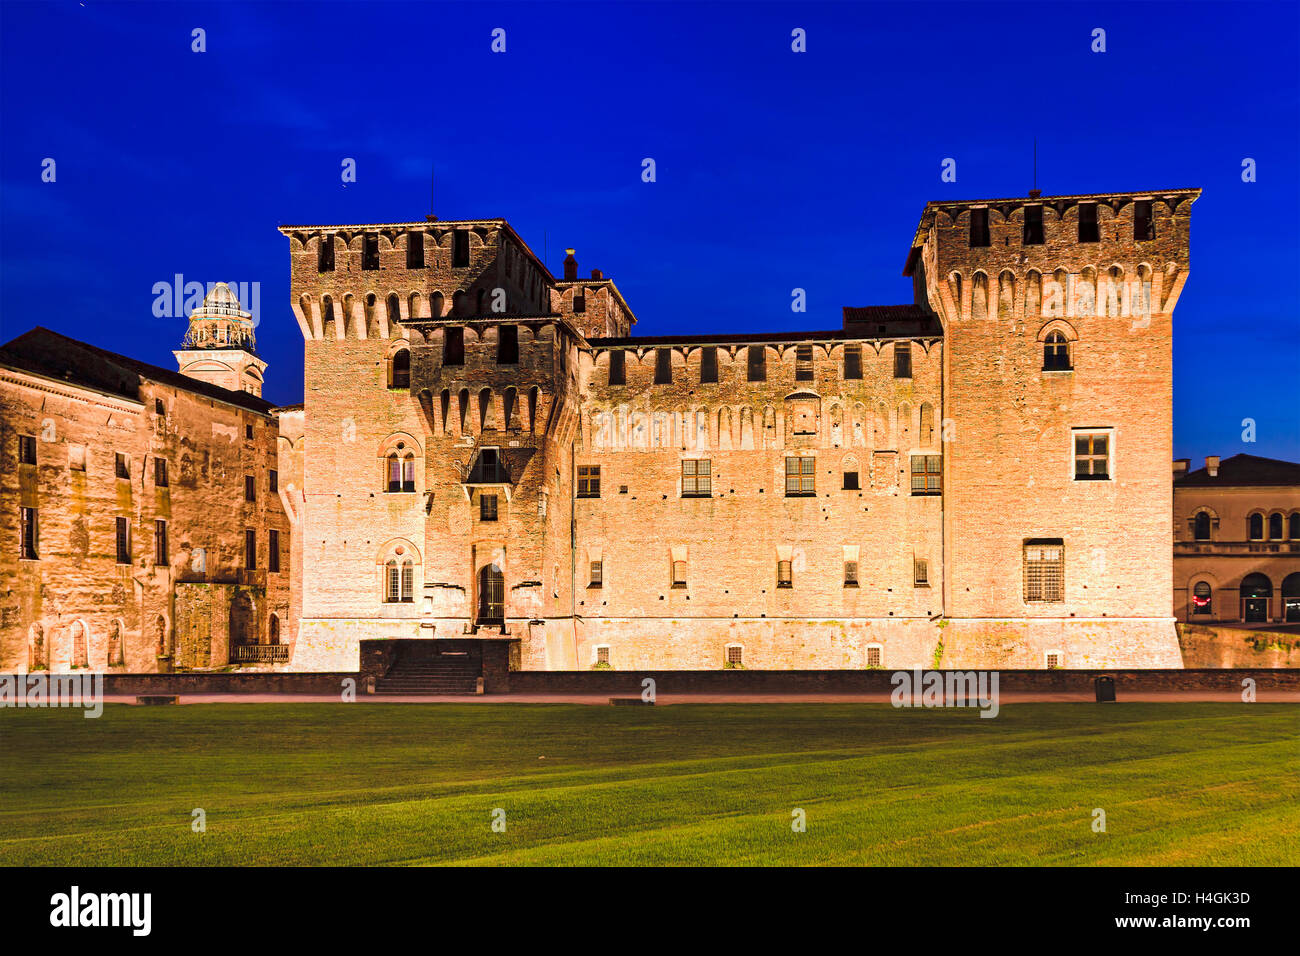 powerful towers of Ducale Palace Saint George castle at sunset in Mantua, Italy. Brightly illuminated medieval landmark - Stock Image